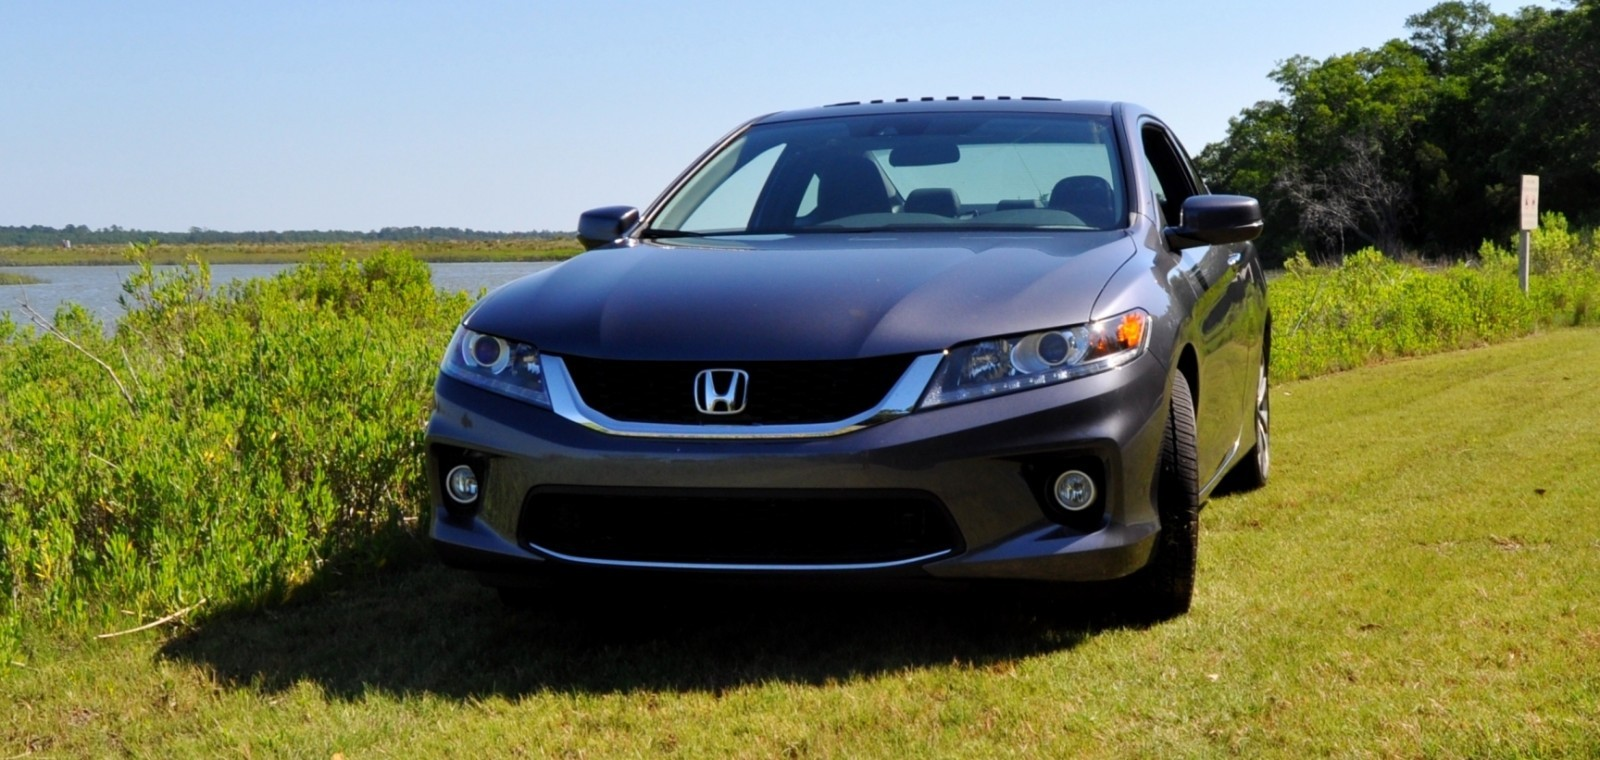 Mega road test review 2014 honda accord coupe v6 ex l navi with six speed manual 14 - 2014 honda accord coupe review ...